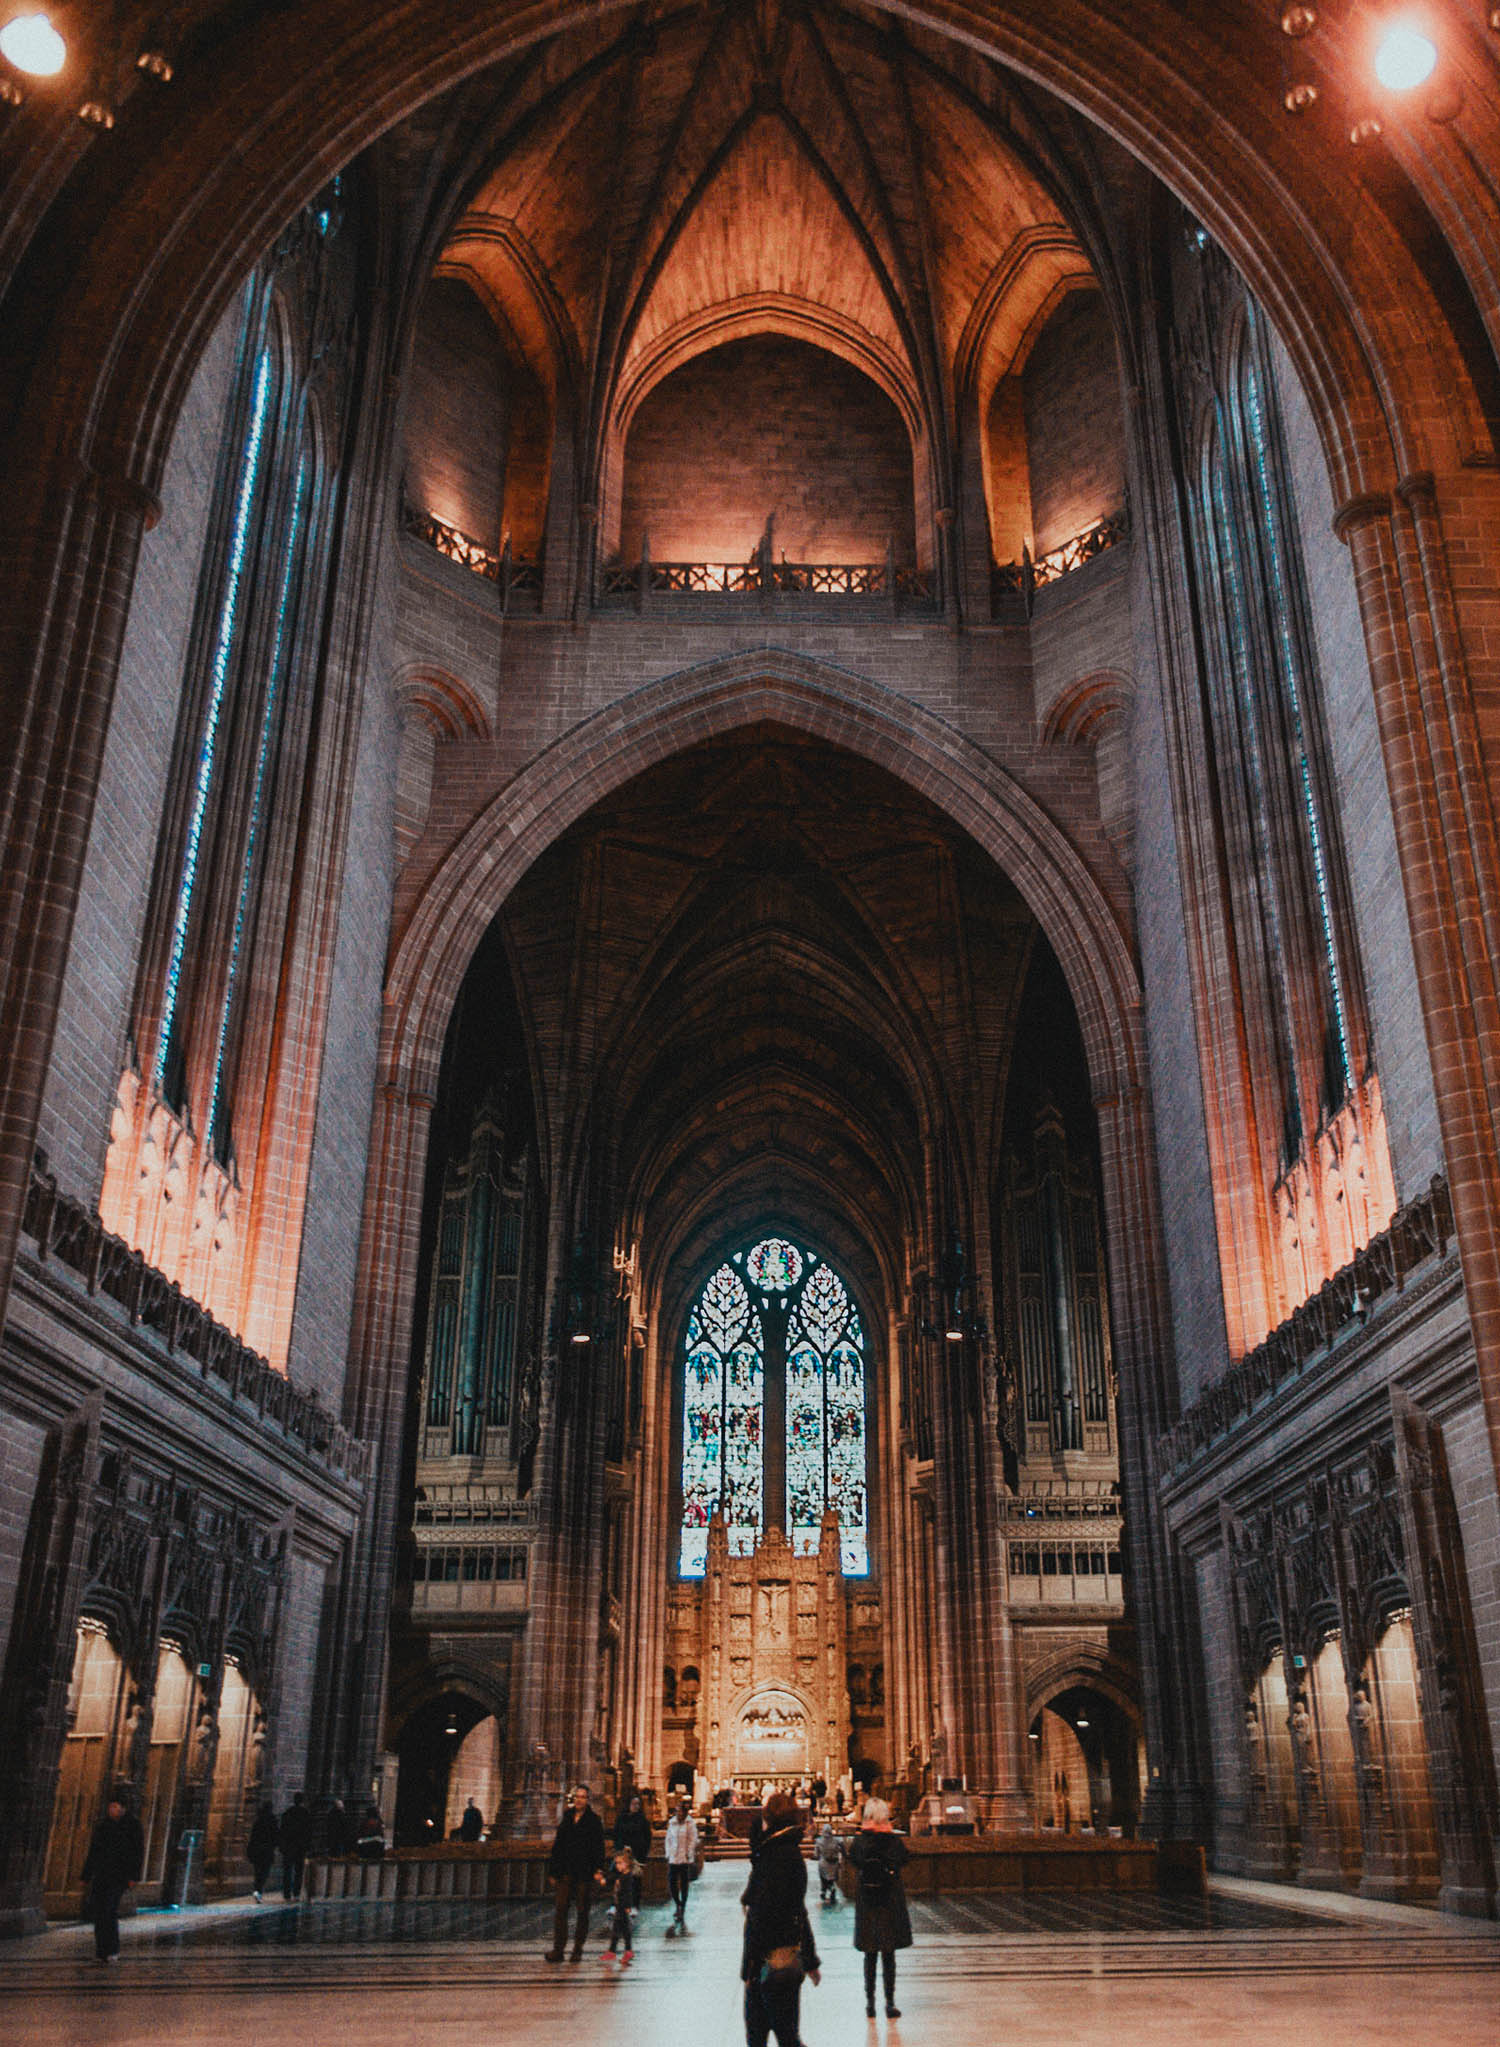 Inside the stunning Liverpool Cathedral